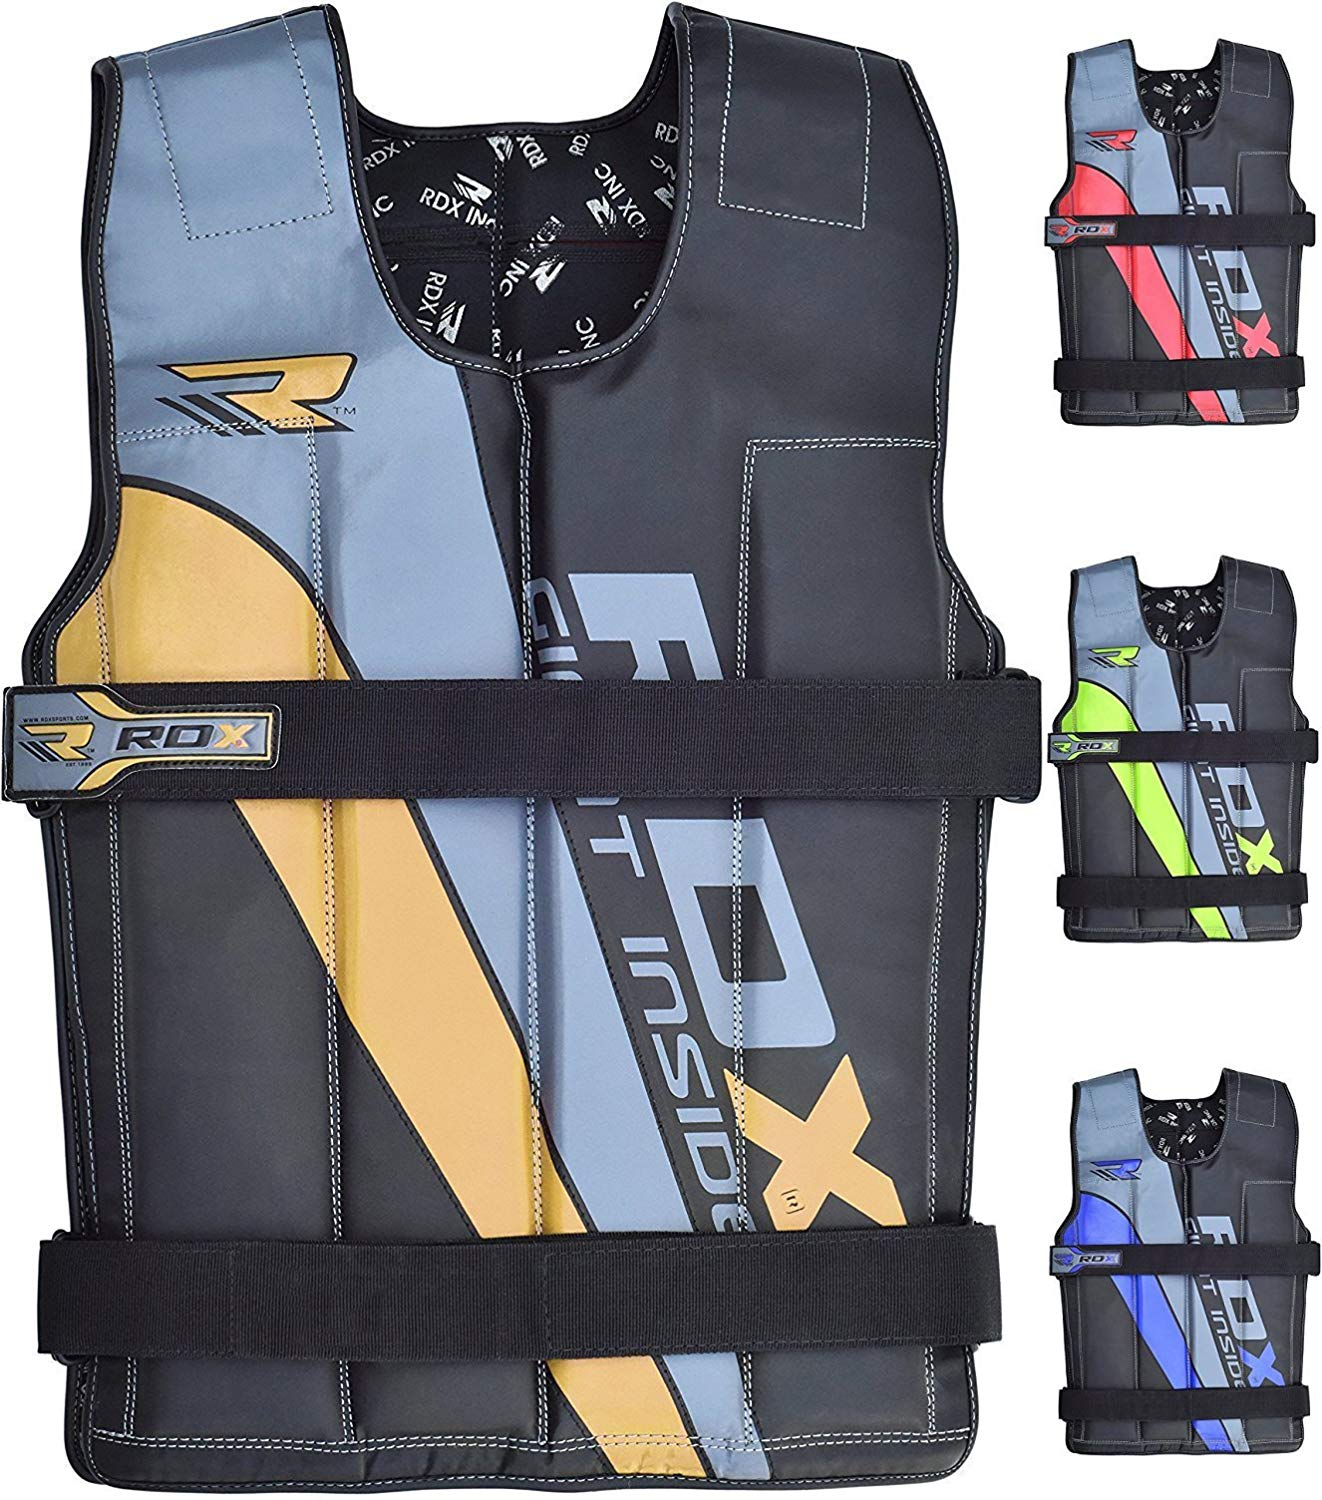 310d34e32c1 Get Quotations · RDX Adjustable Weighted Vest Crossfit Fitness 14KG 18KG Weight  Jacket Training Workout Excercise